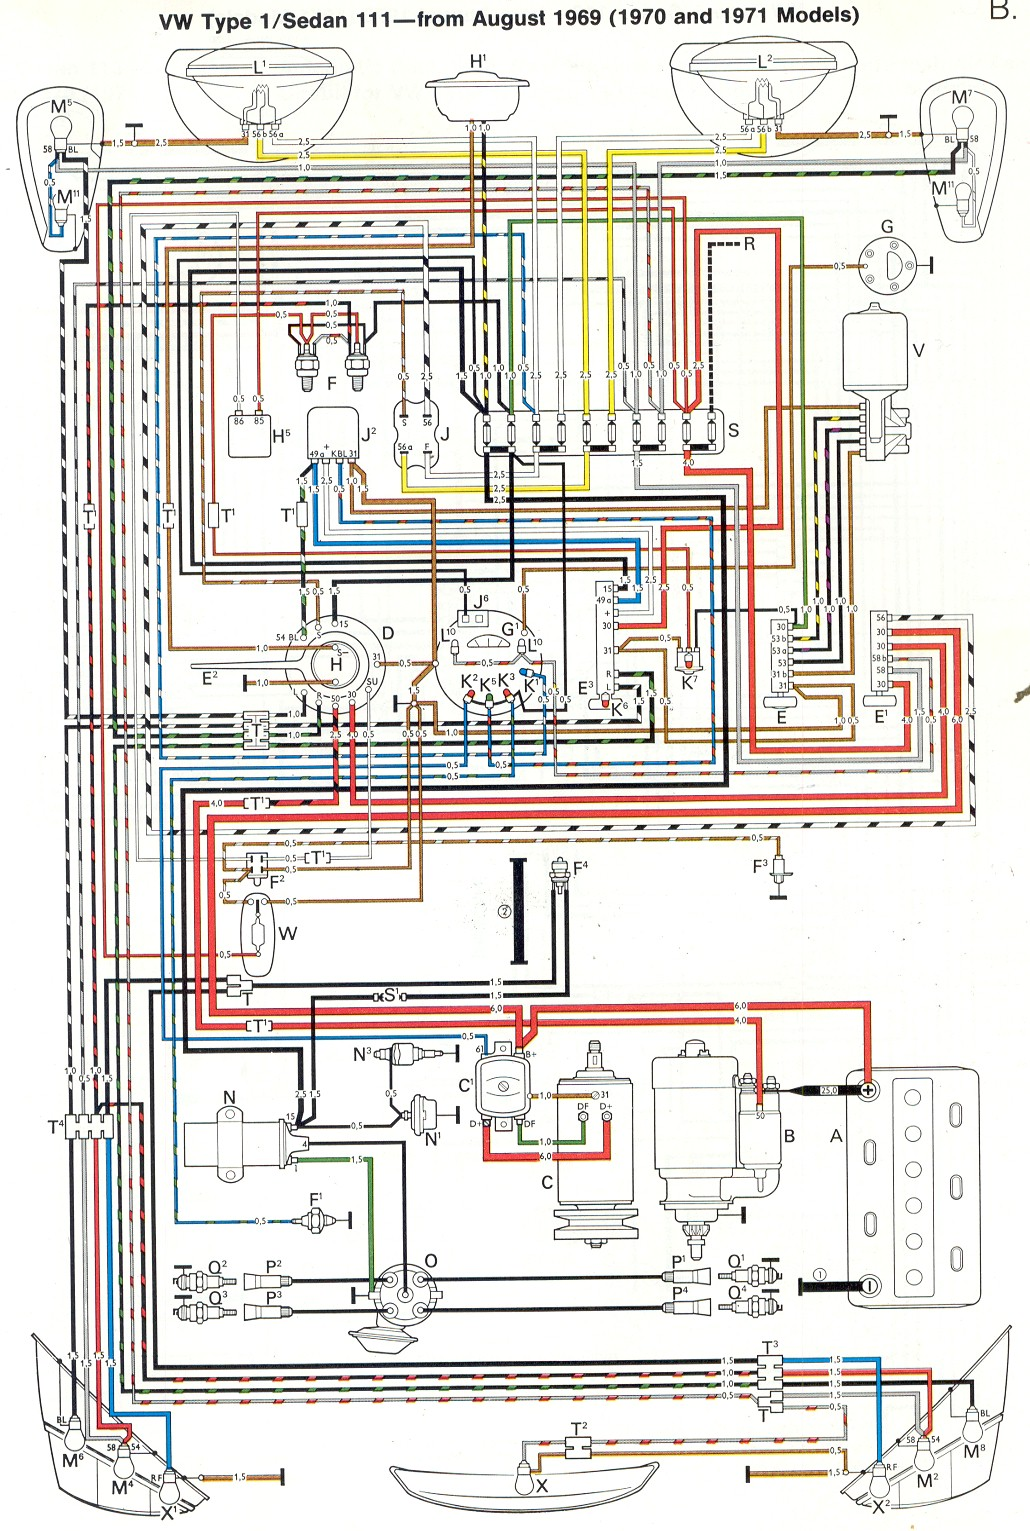 69 vw bug wiring wiring diagram1969 vw bug wiring schematic wiring diagram